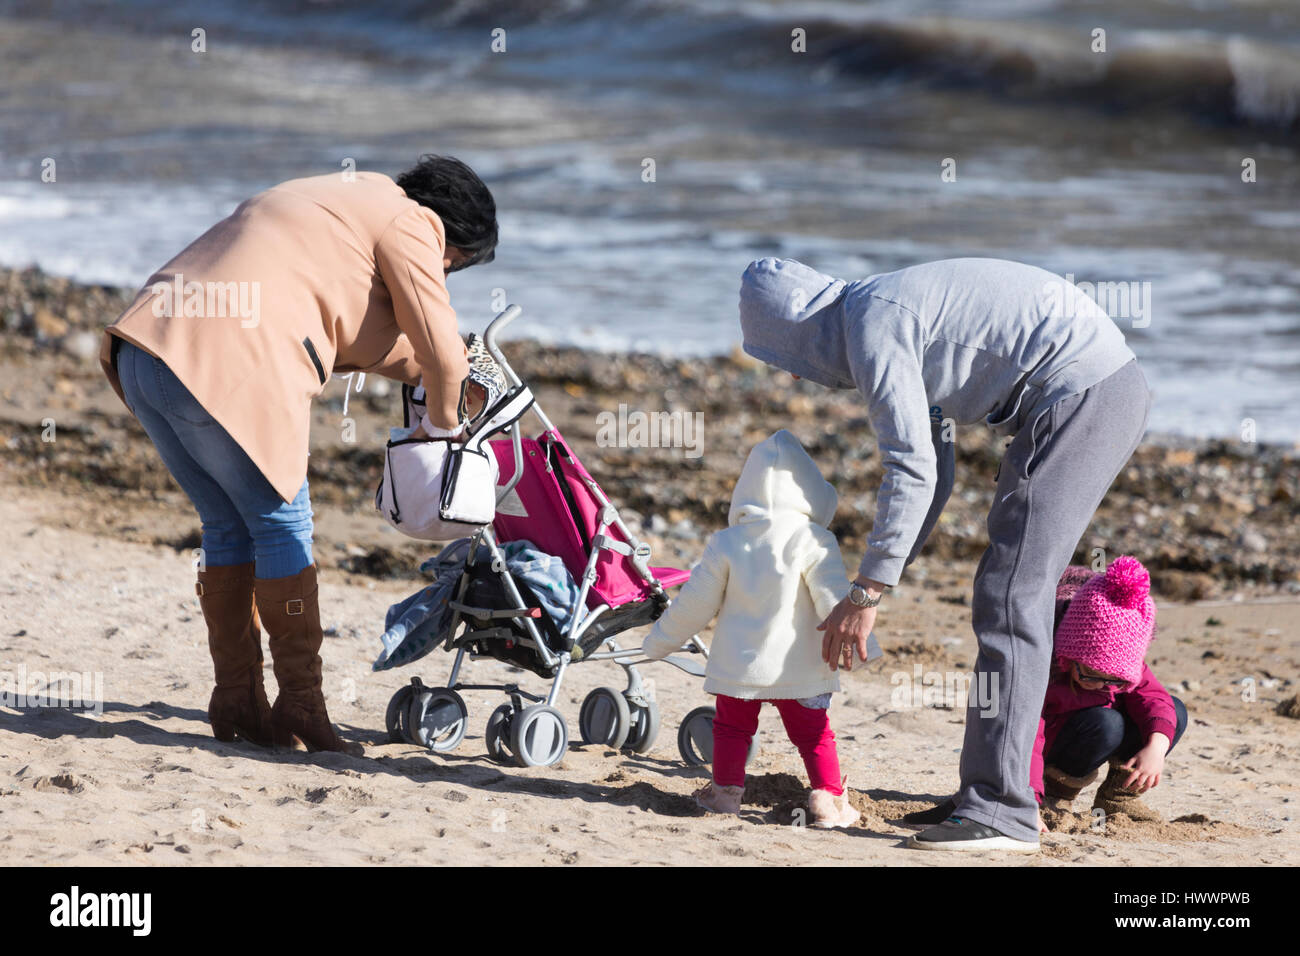 Family time during spring sunshine on the popular tourist beach at Llandudno, Wales - Stock Image